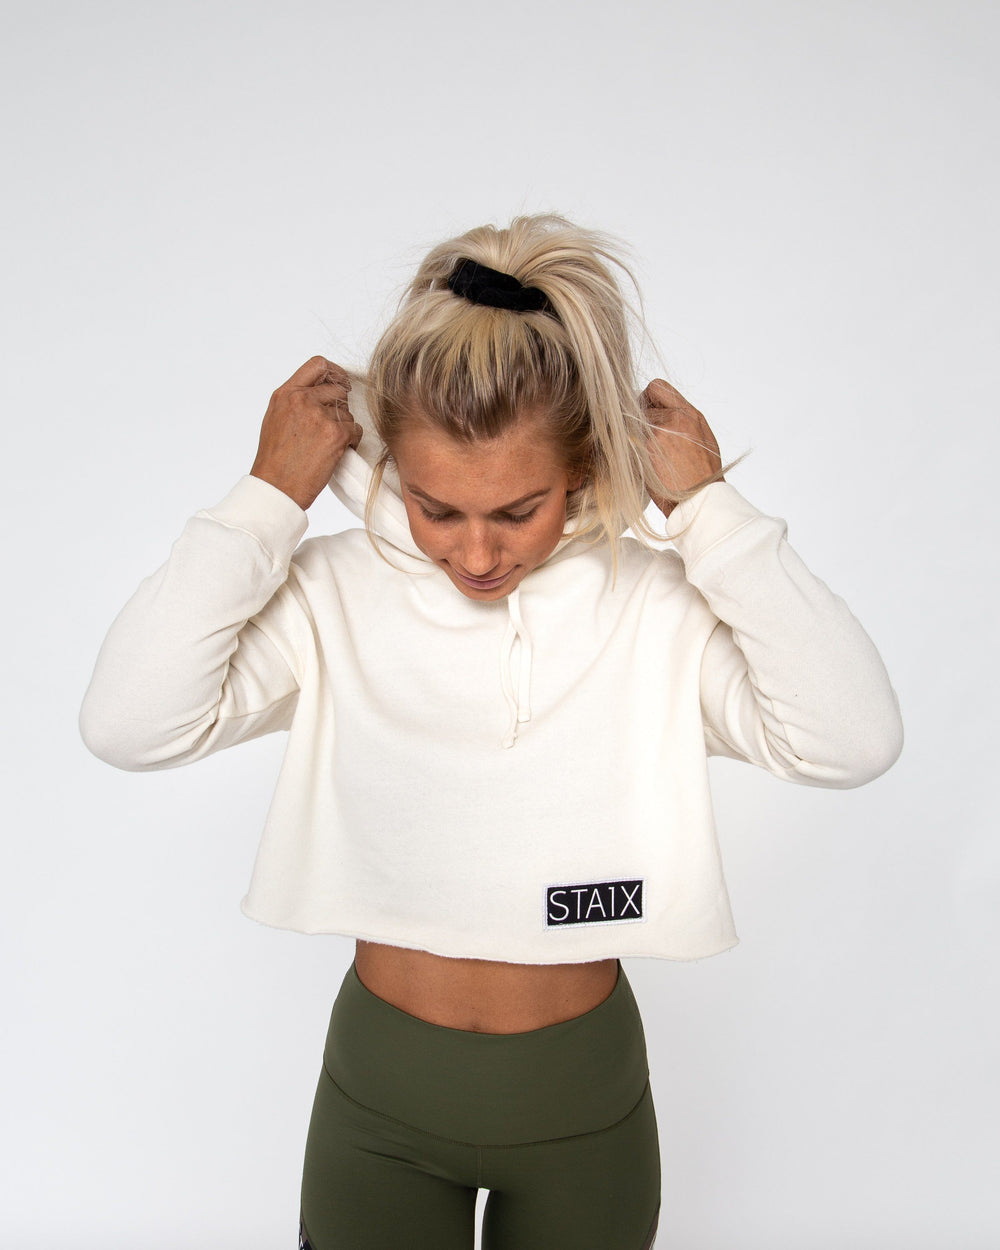 PACE CROP TOP WOMEN'S CROP TOP STAIX XSMALL CREME